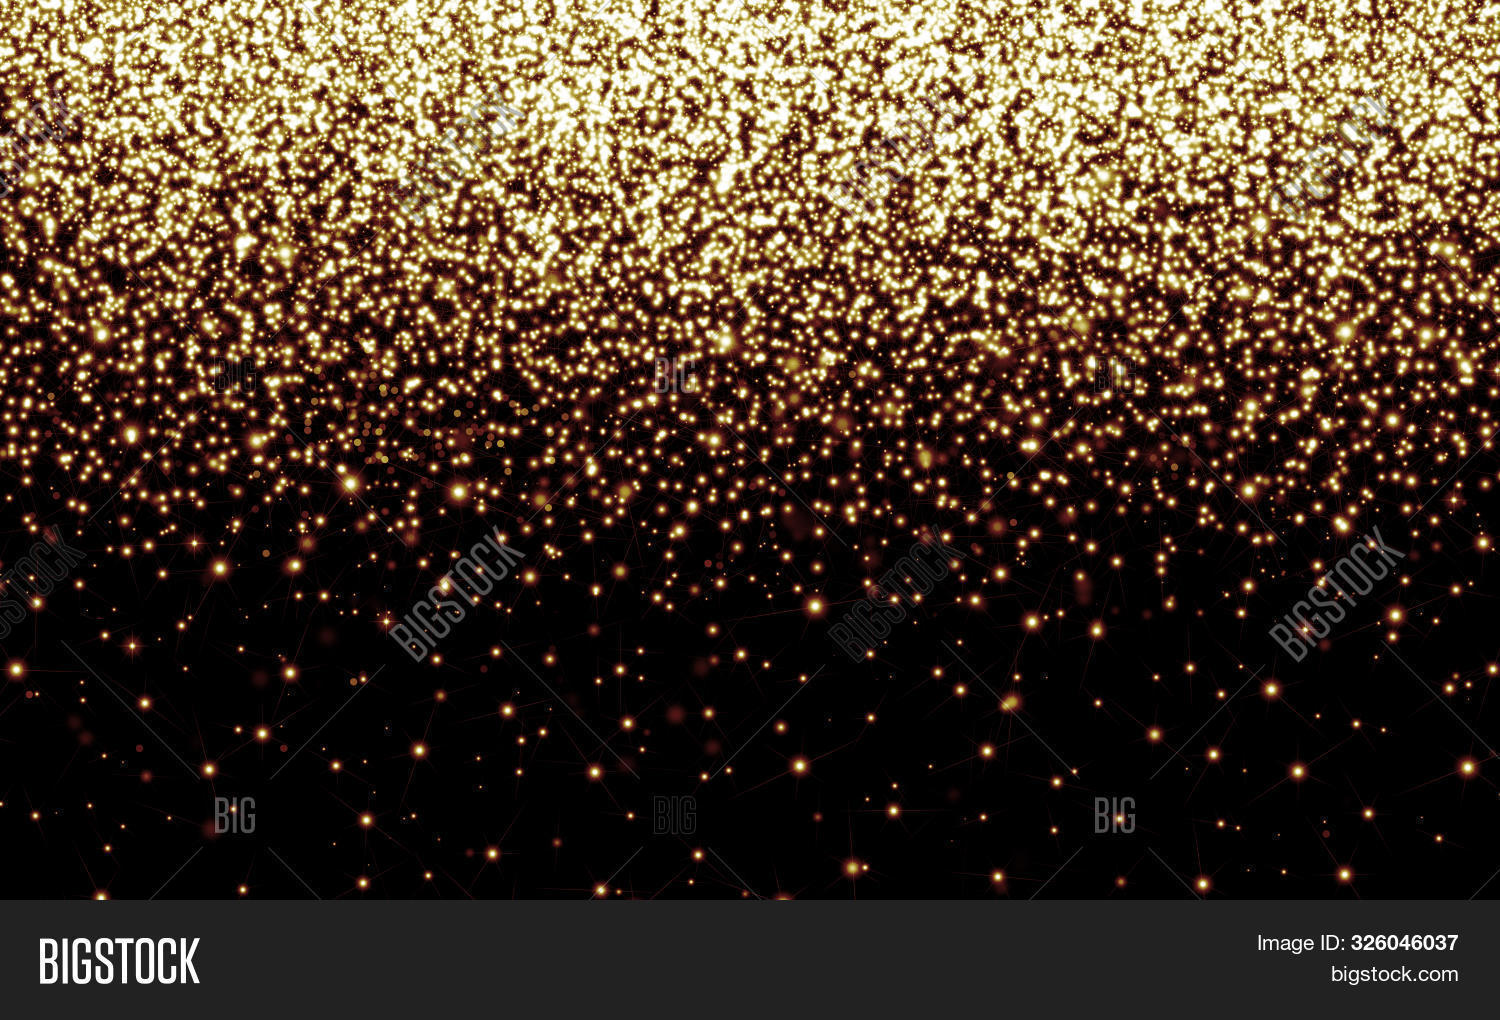 Abstract,Christmas,Golden,Shine,background,black,bokeh,bright,celebration,confetti,effect,glitter,glow,gold,holiday,illustration,light,luxury,new,night,overlay,particles,party,pattern,rain,shimmer,shiny,sparkle,texture,yellow